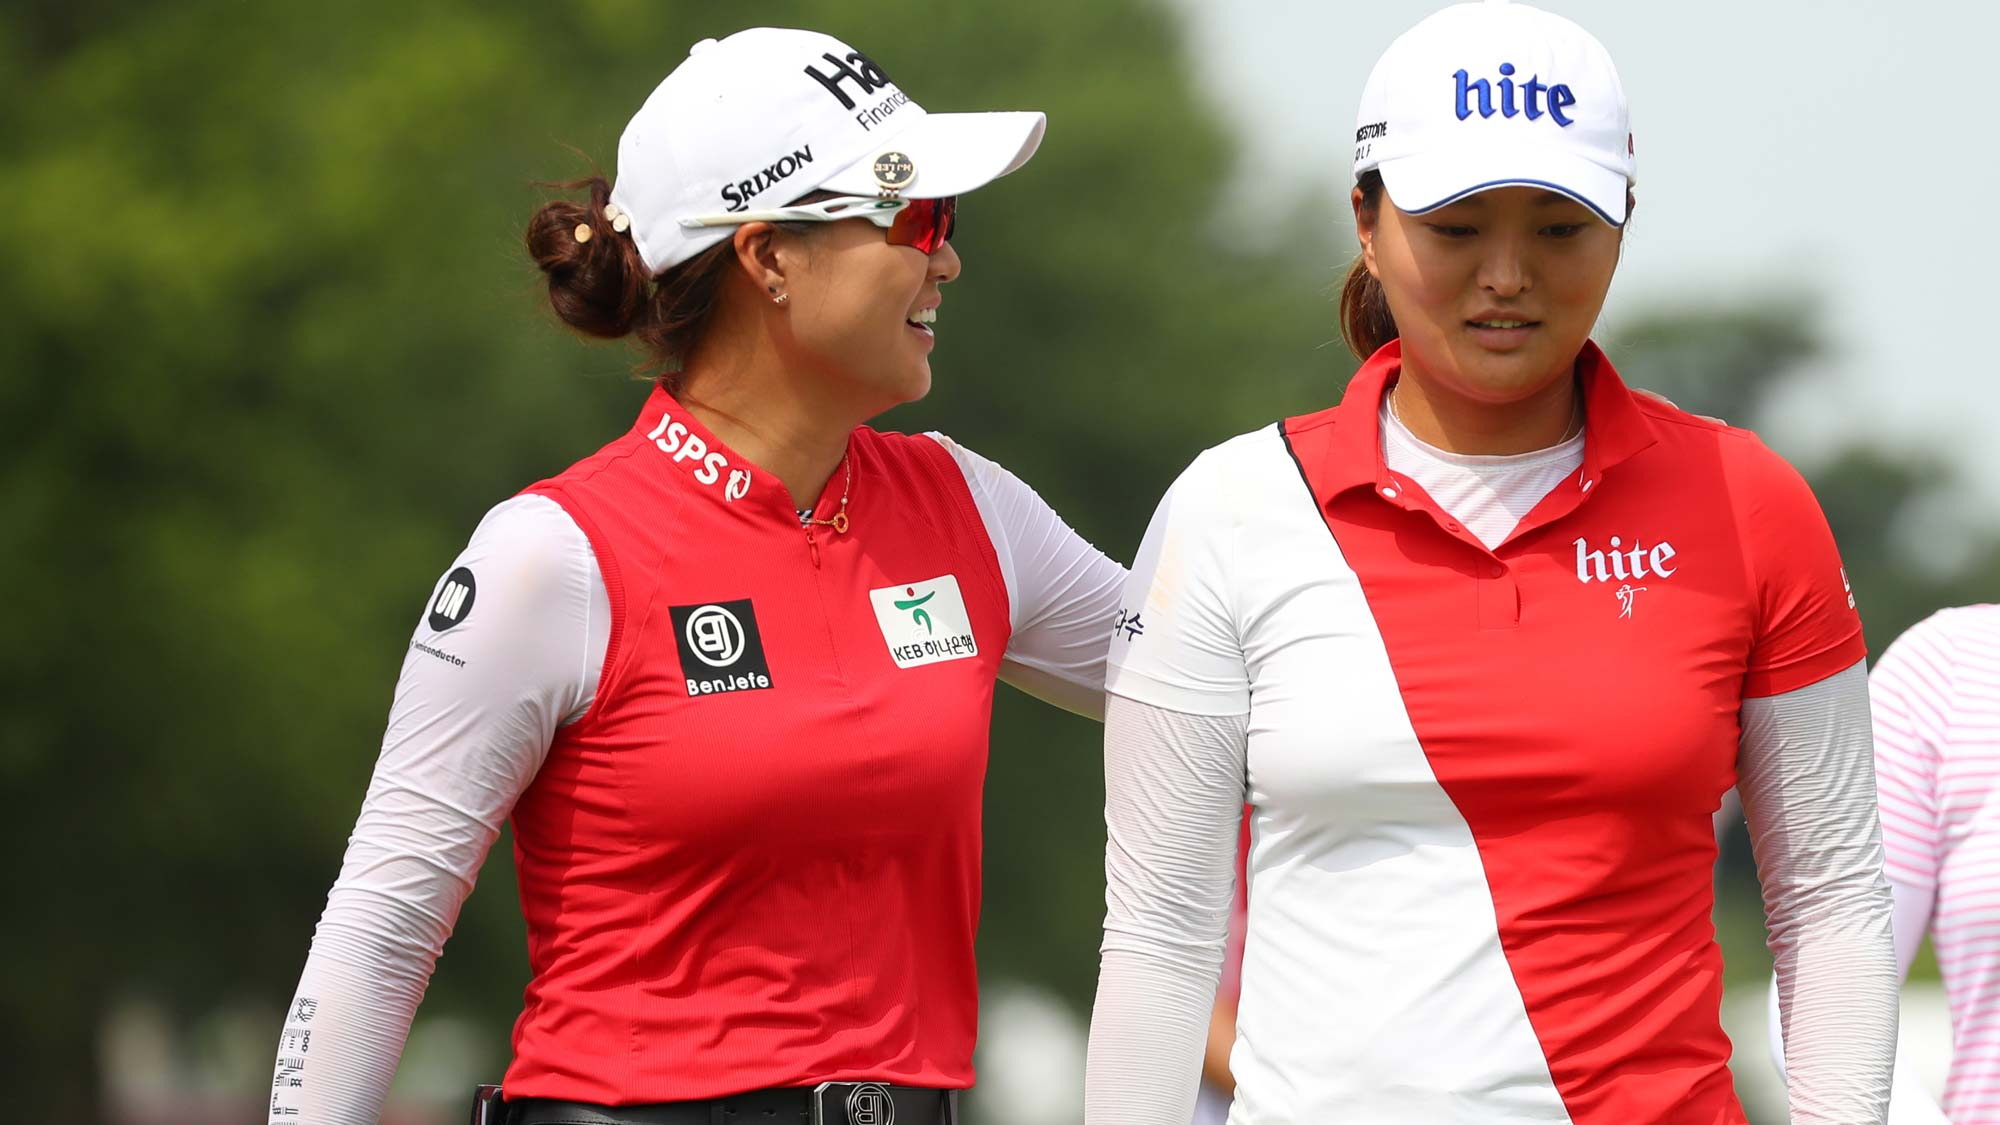 Teammates Minjee Lee of Australia (L) and Jin Young Ko of South Korea walk off the first green during round two of the Dow Great Lakes Bay Invitational